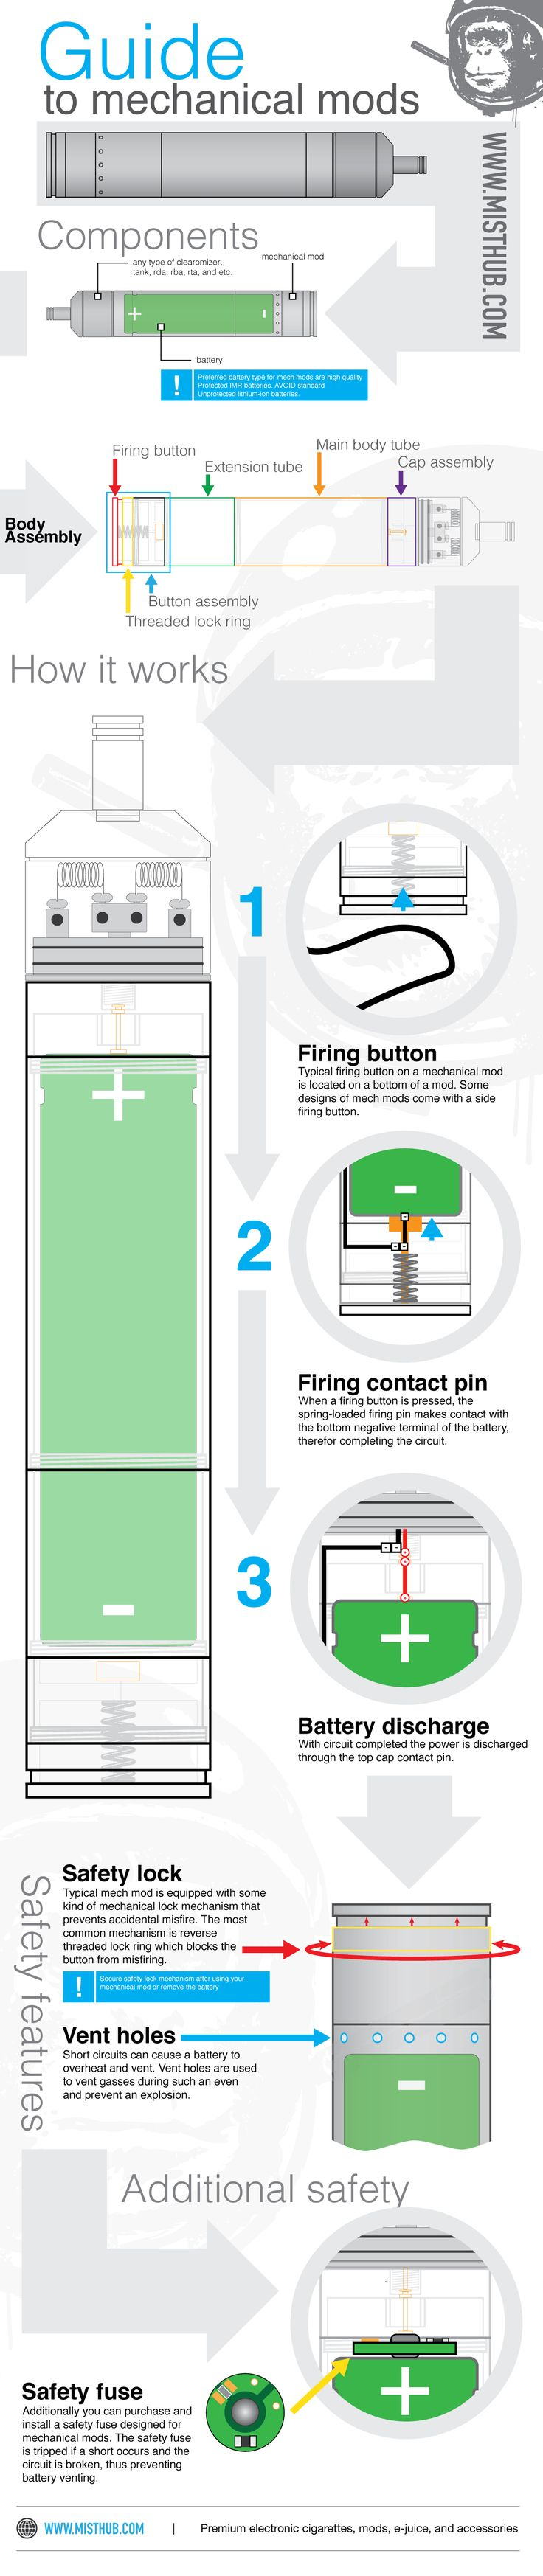 Mechanical MODs Infographics [HOW IT WORKS]. Learn more about how mechanical mods and vape devices work from out simple infographics.